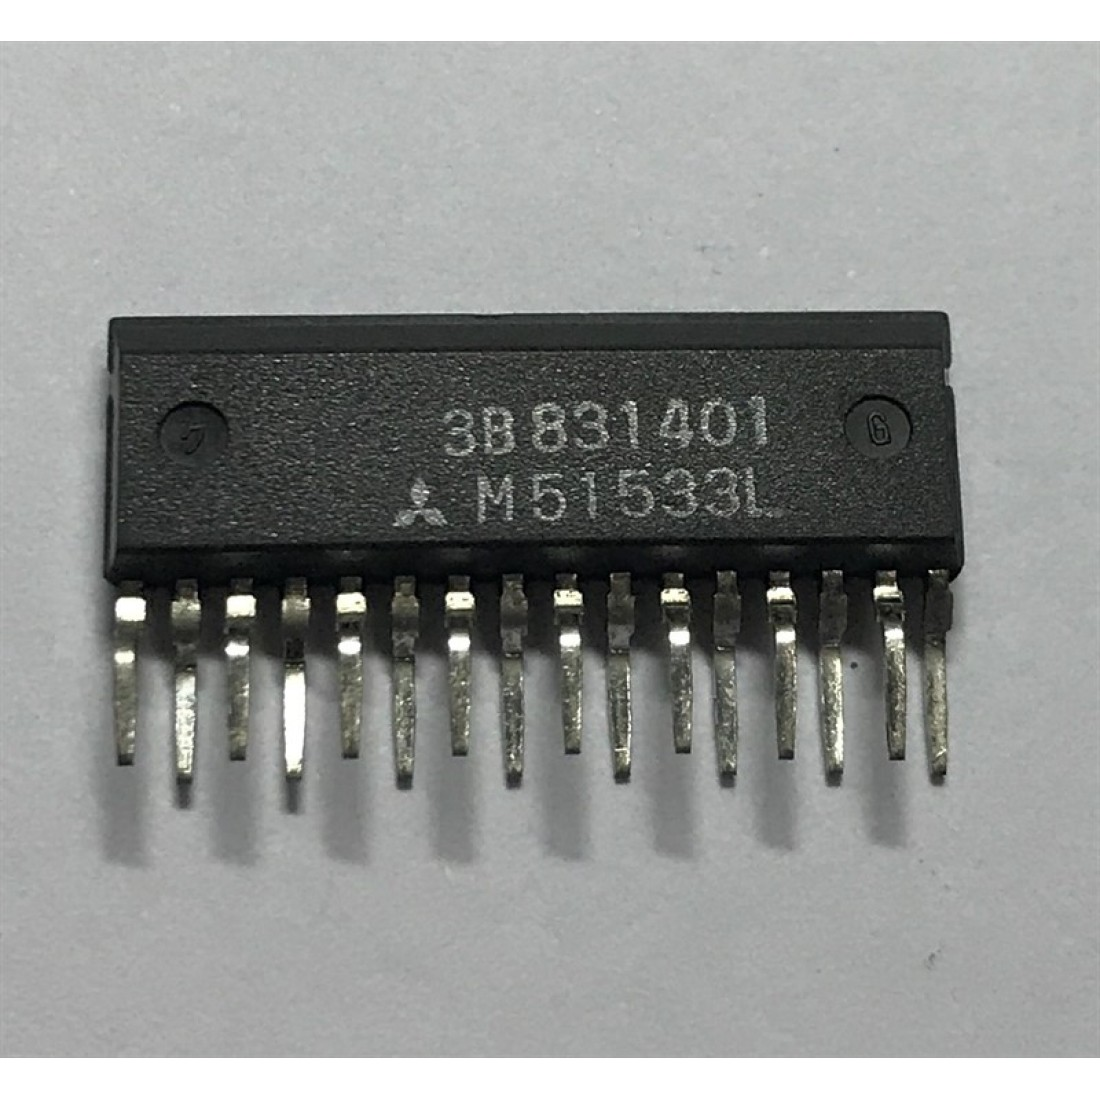 Ic M51533 Integrated Circuit Pioneer Parts Electronic Images Of Pantazopoulos Speakers Solomou Street